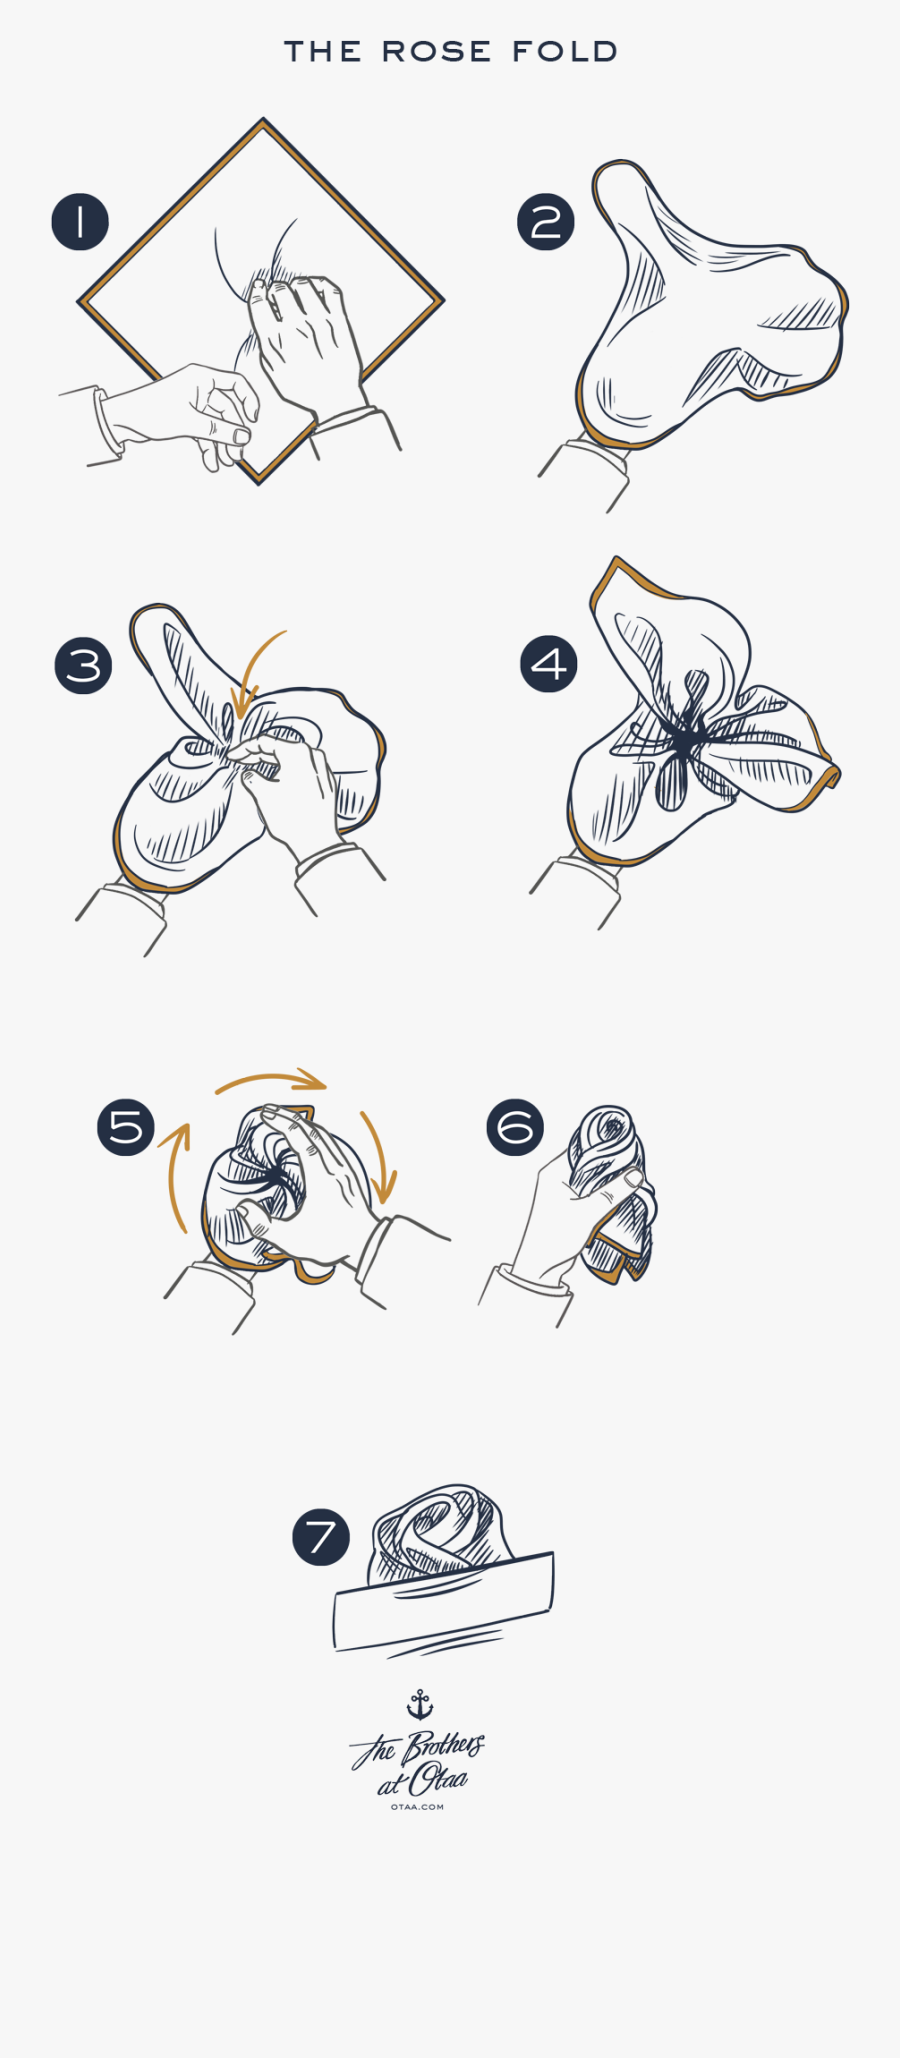 How To Fold A Rose Fold - Rose Fold, Transparent Clipart